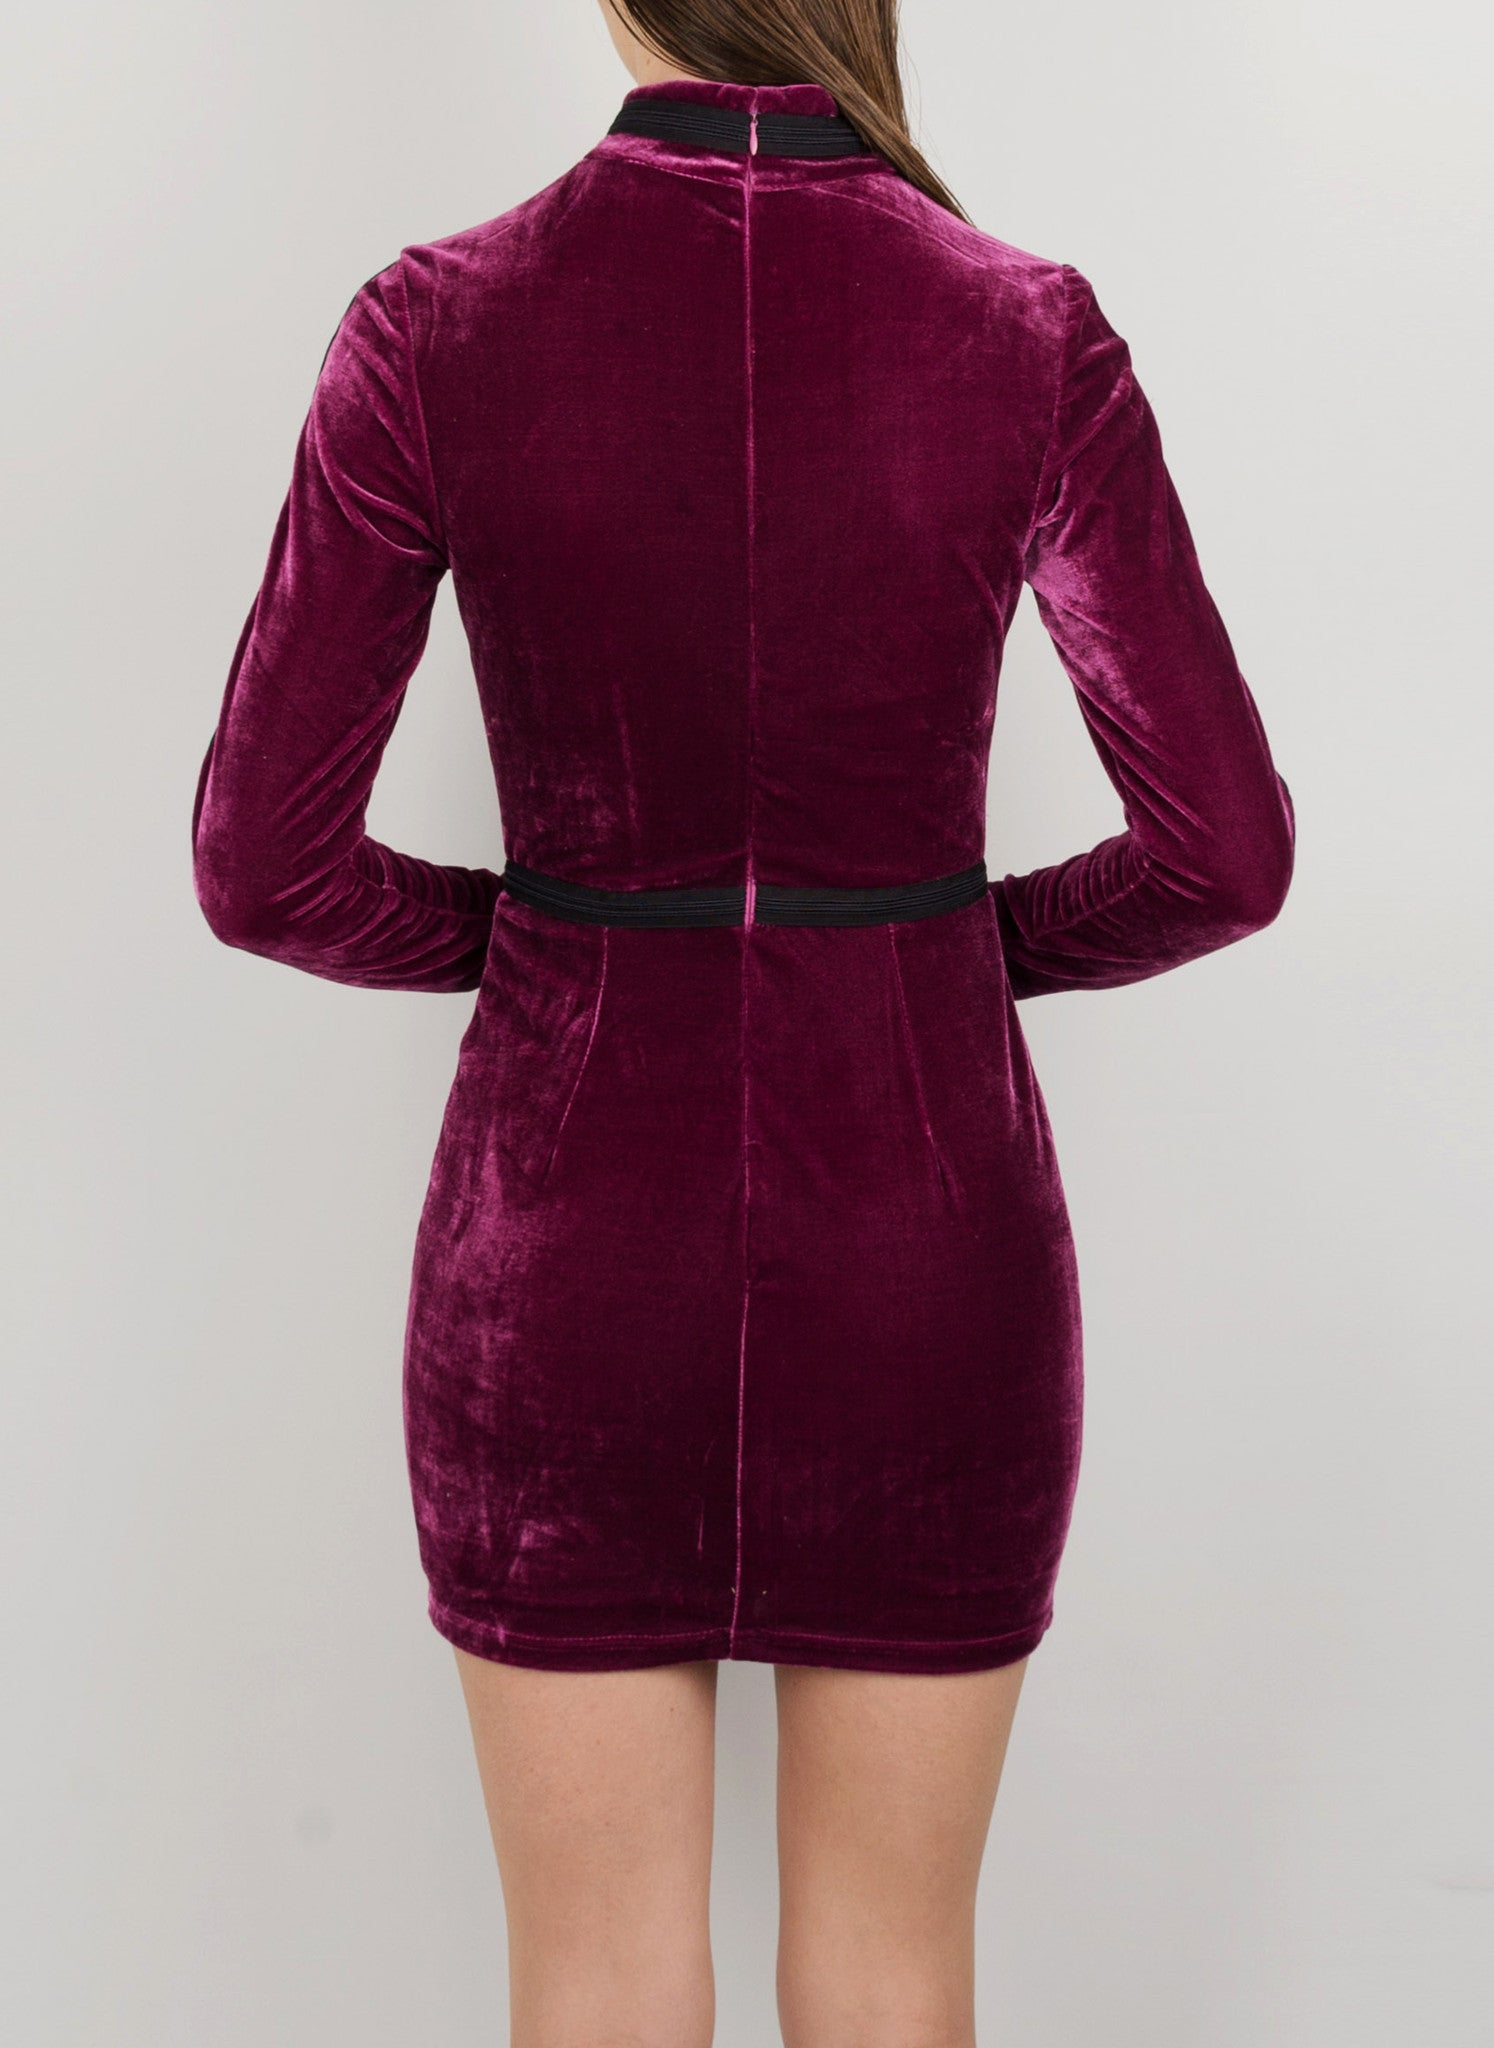 MADOLA-THE-LABEL. JOANA DRESS. Premium purple velvet fabric. Fully lined, Long Sleeve. Designed in Australia